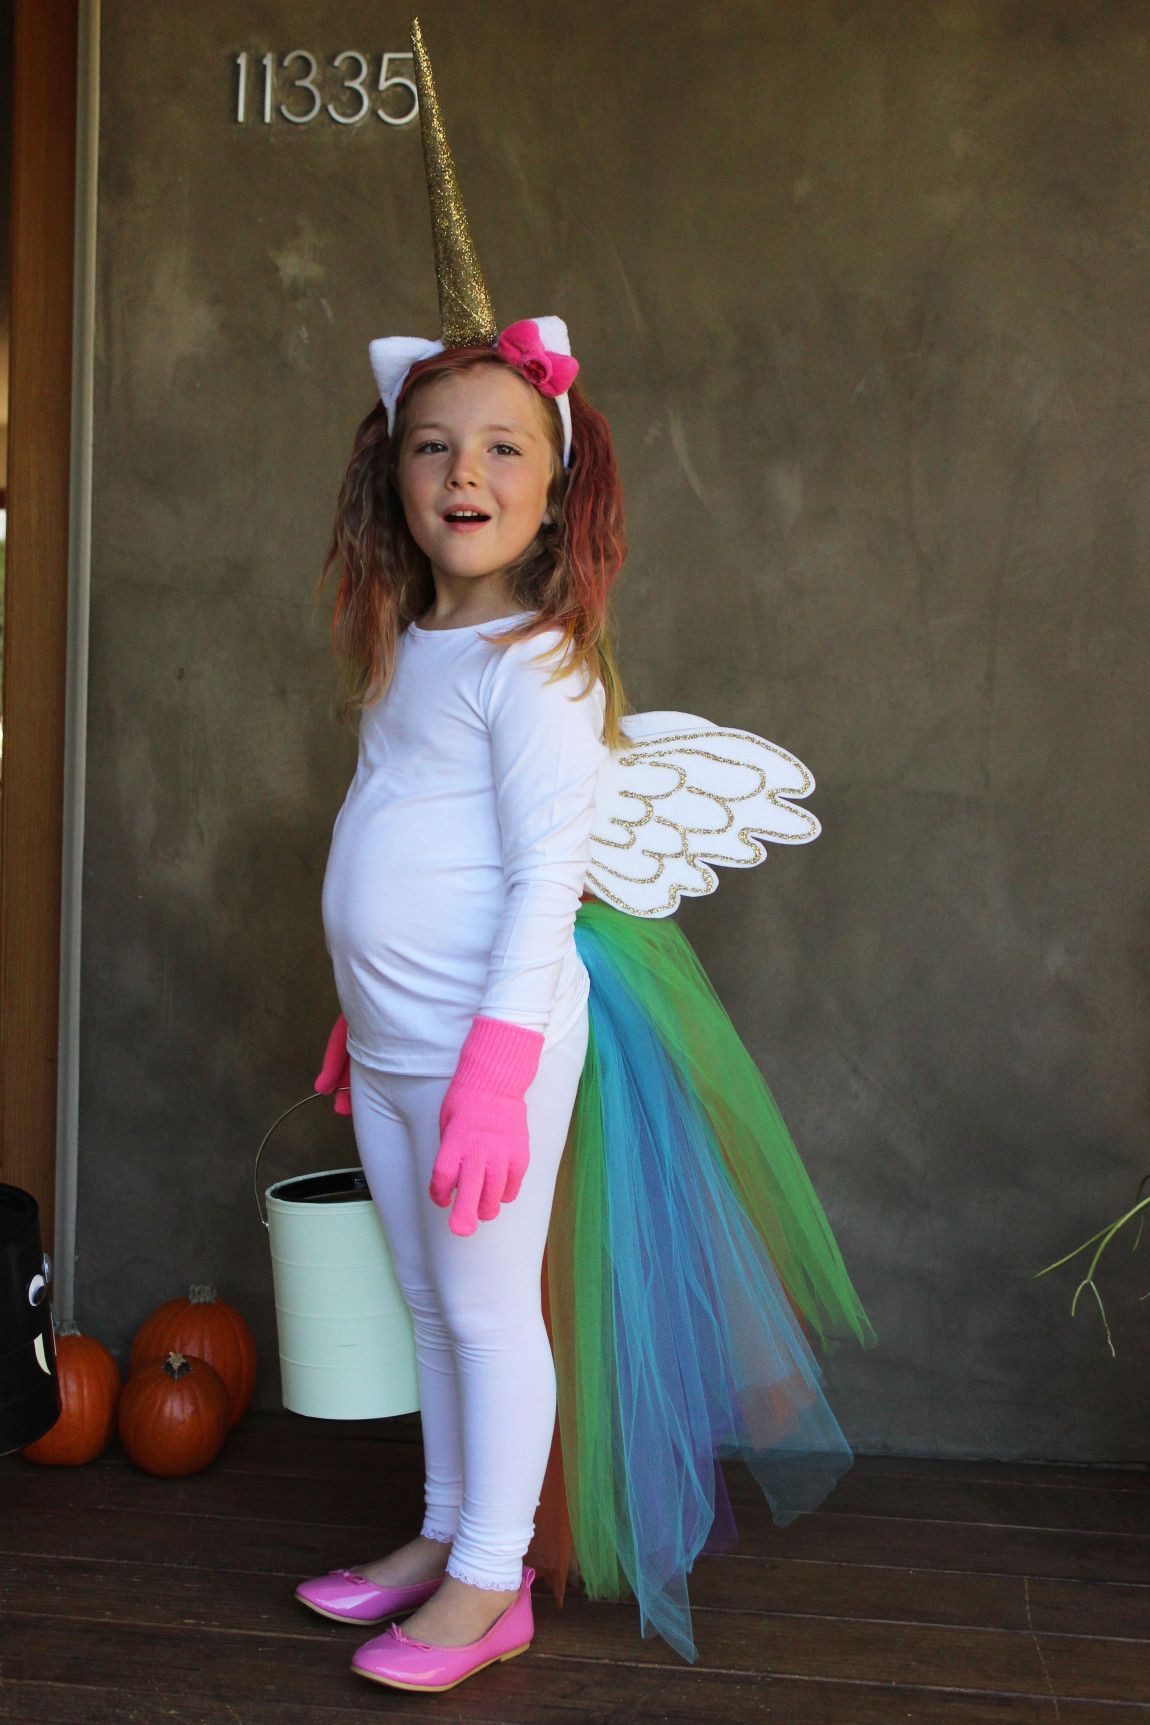 Best ideas about Easy DIY Kids Costumes . Save or Pin 50 Best DIY Halloween Costumes For Kids in 2017 Now.